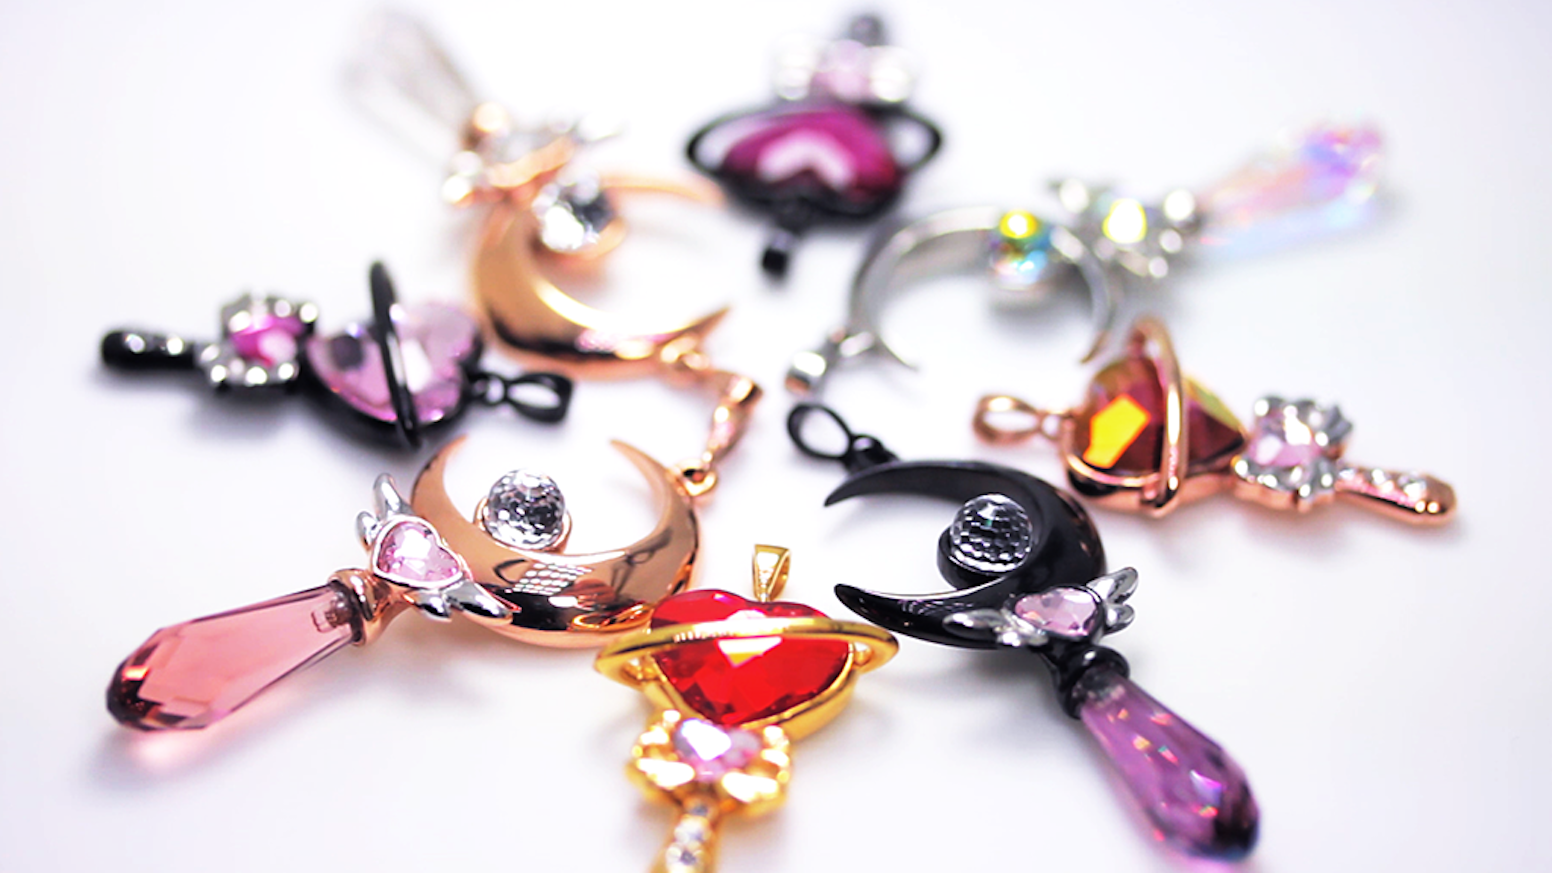 Magical girl inspired jewelry crafted from stainless steel and Swarovski® Elements.